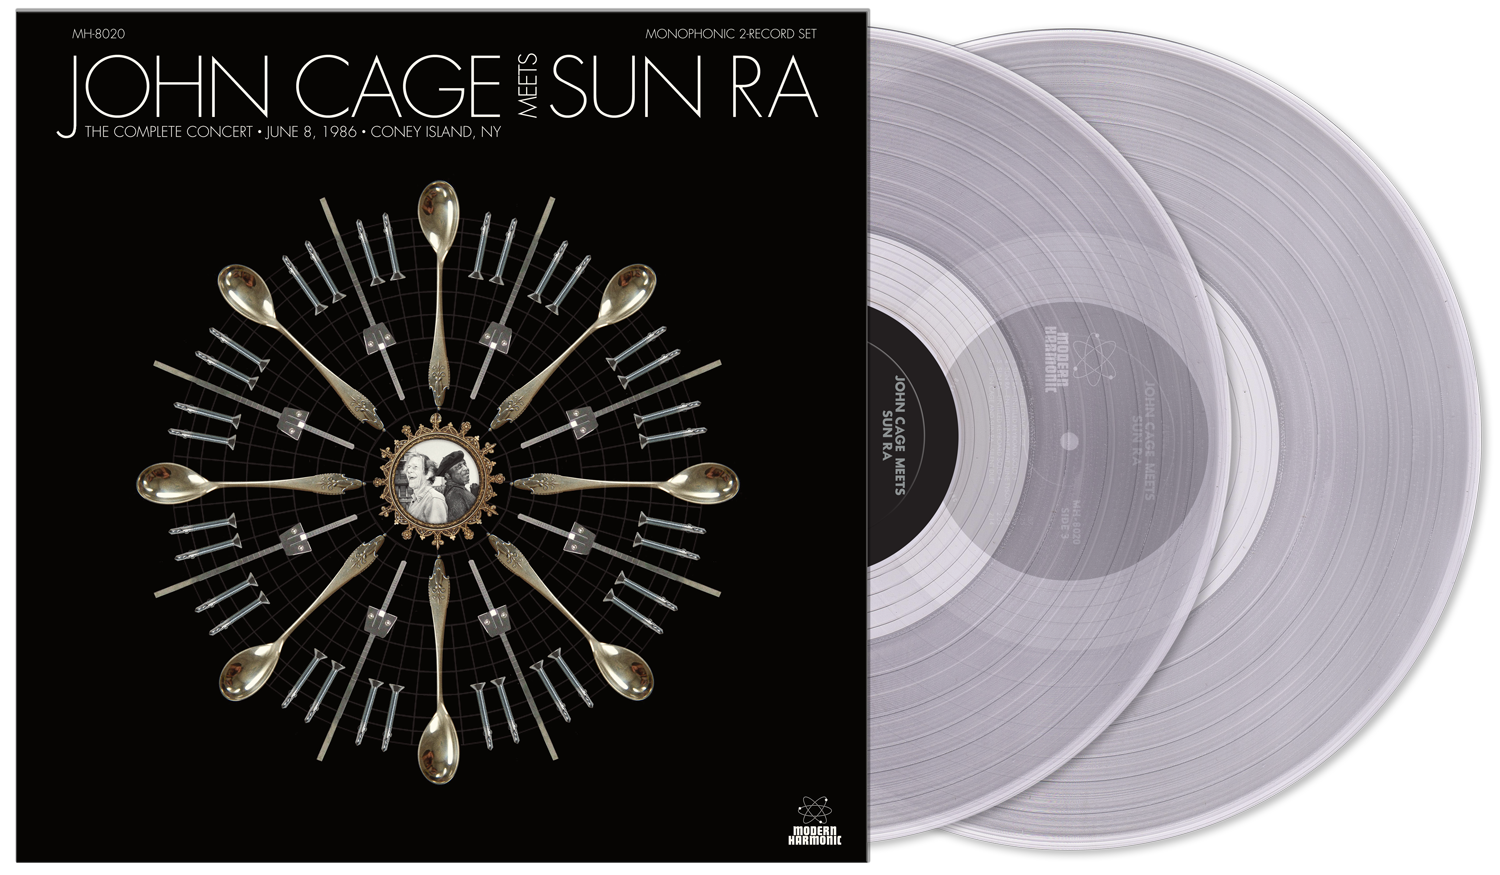 Cage, John Meets Sun Ra - The Complete Concert - Clear Vinyl 2-LP